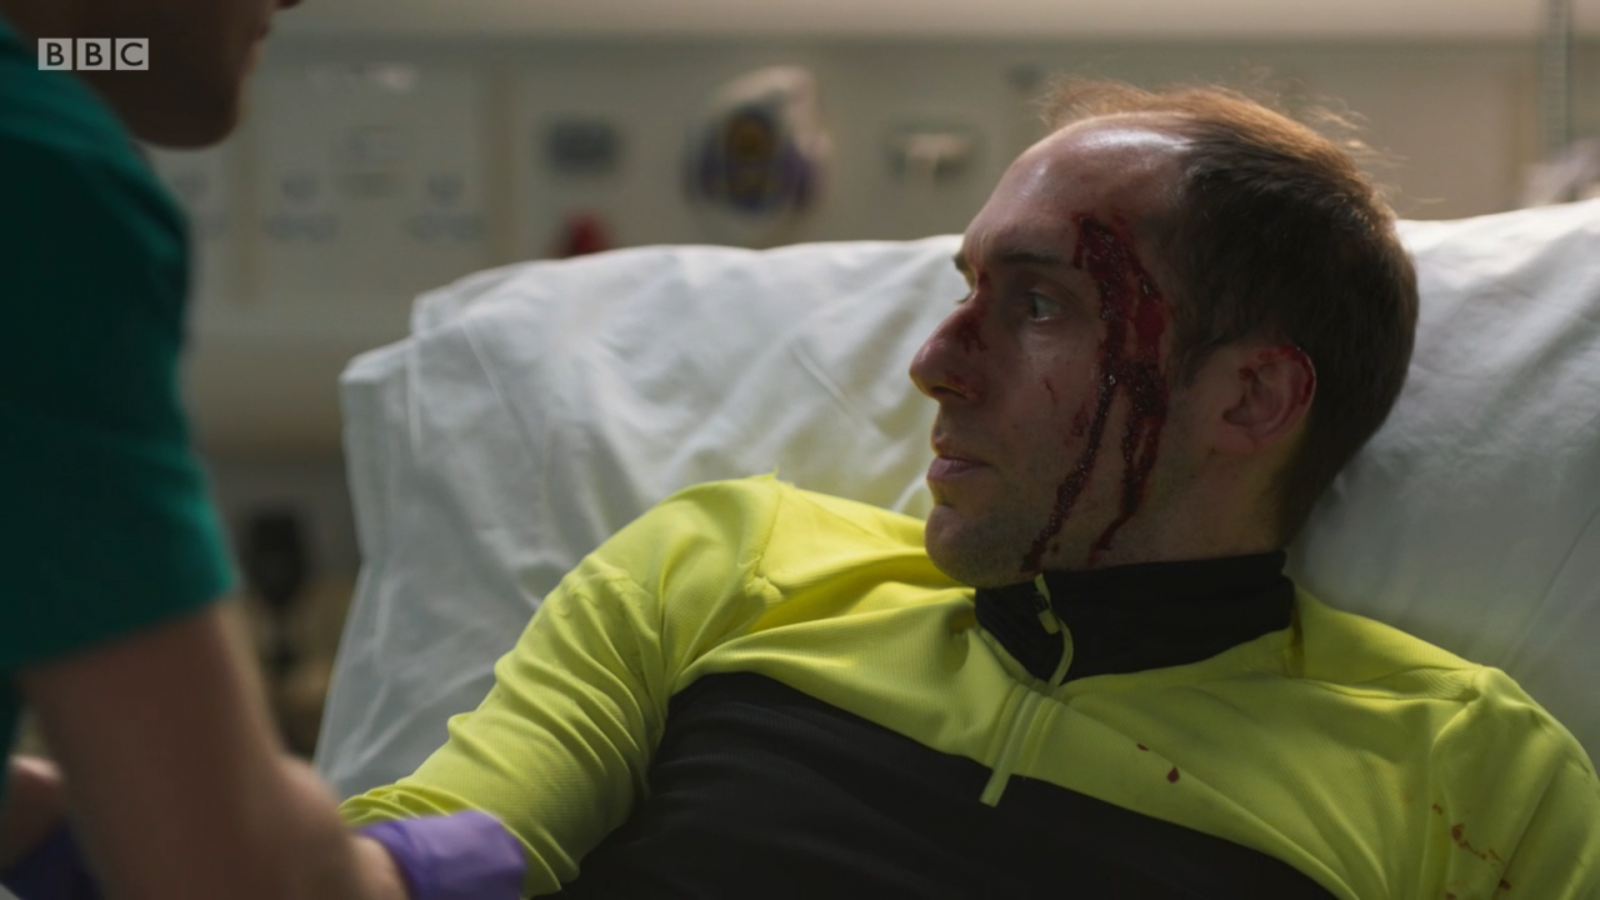 CASUALTY (BBC) - Mike Rodriguez